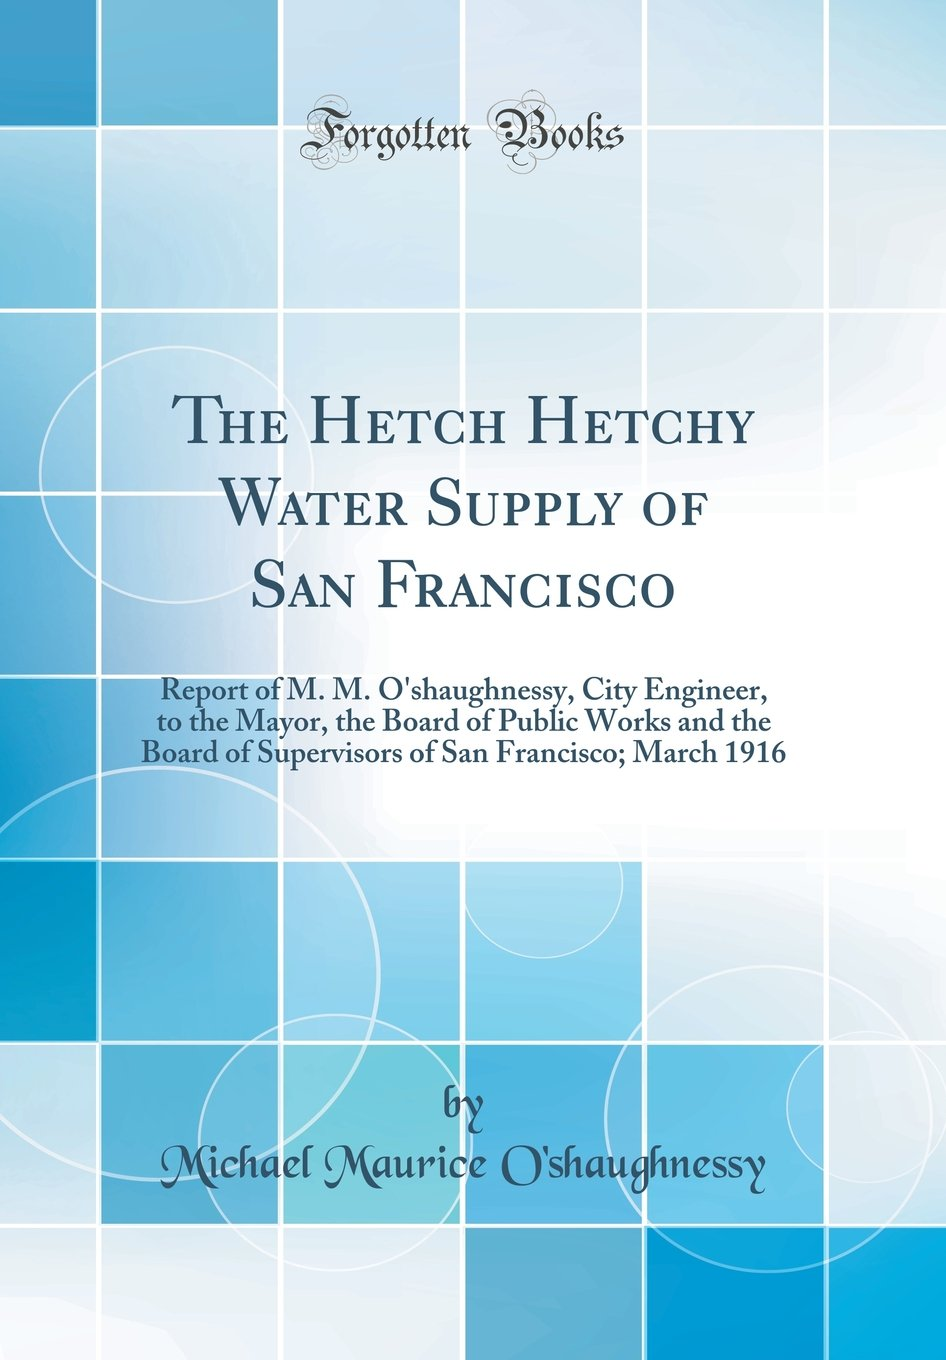 Download The Hetch Hetchy Water Supply of San Francisco: Report of M. M. O'Shaughnessy, City Engineer, to the Mayor, the Board of Public Works and the Board of ... San Francisco; March 1916 (Classic Reprint) ebook